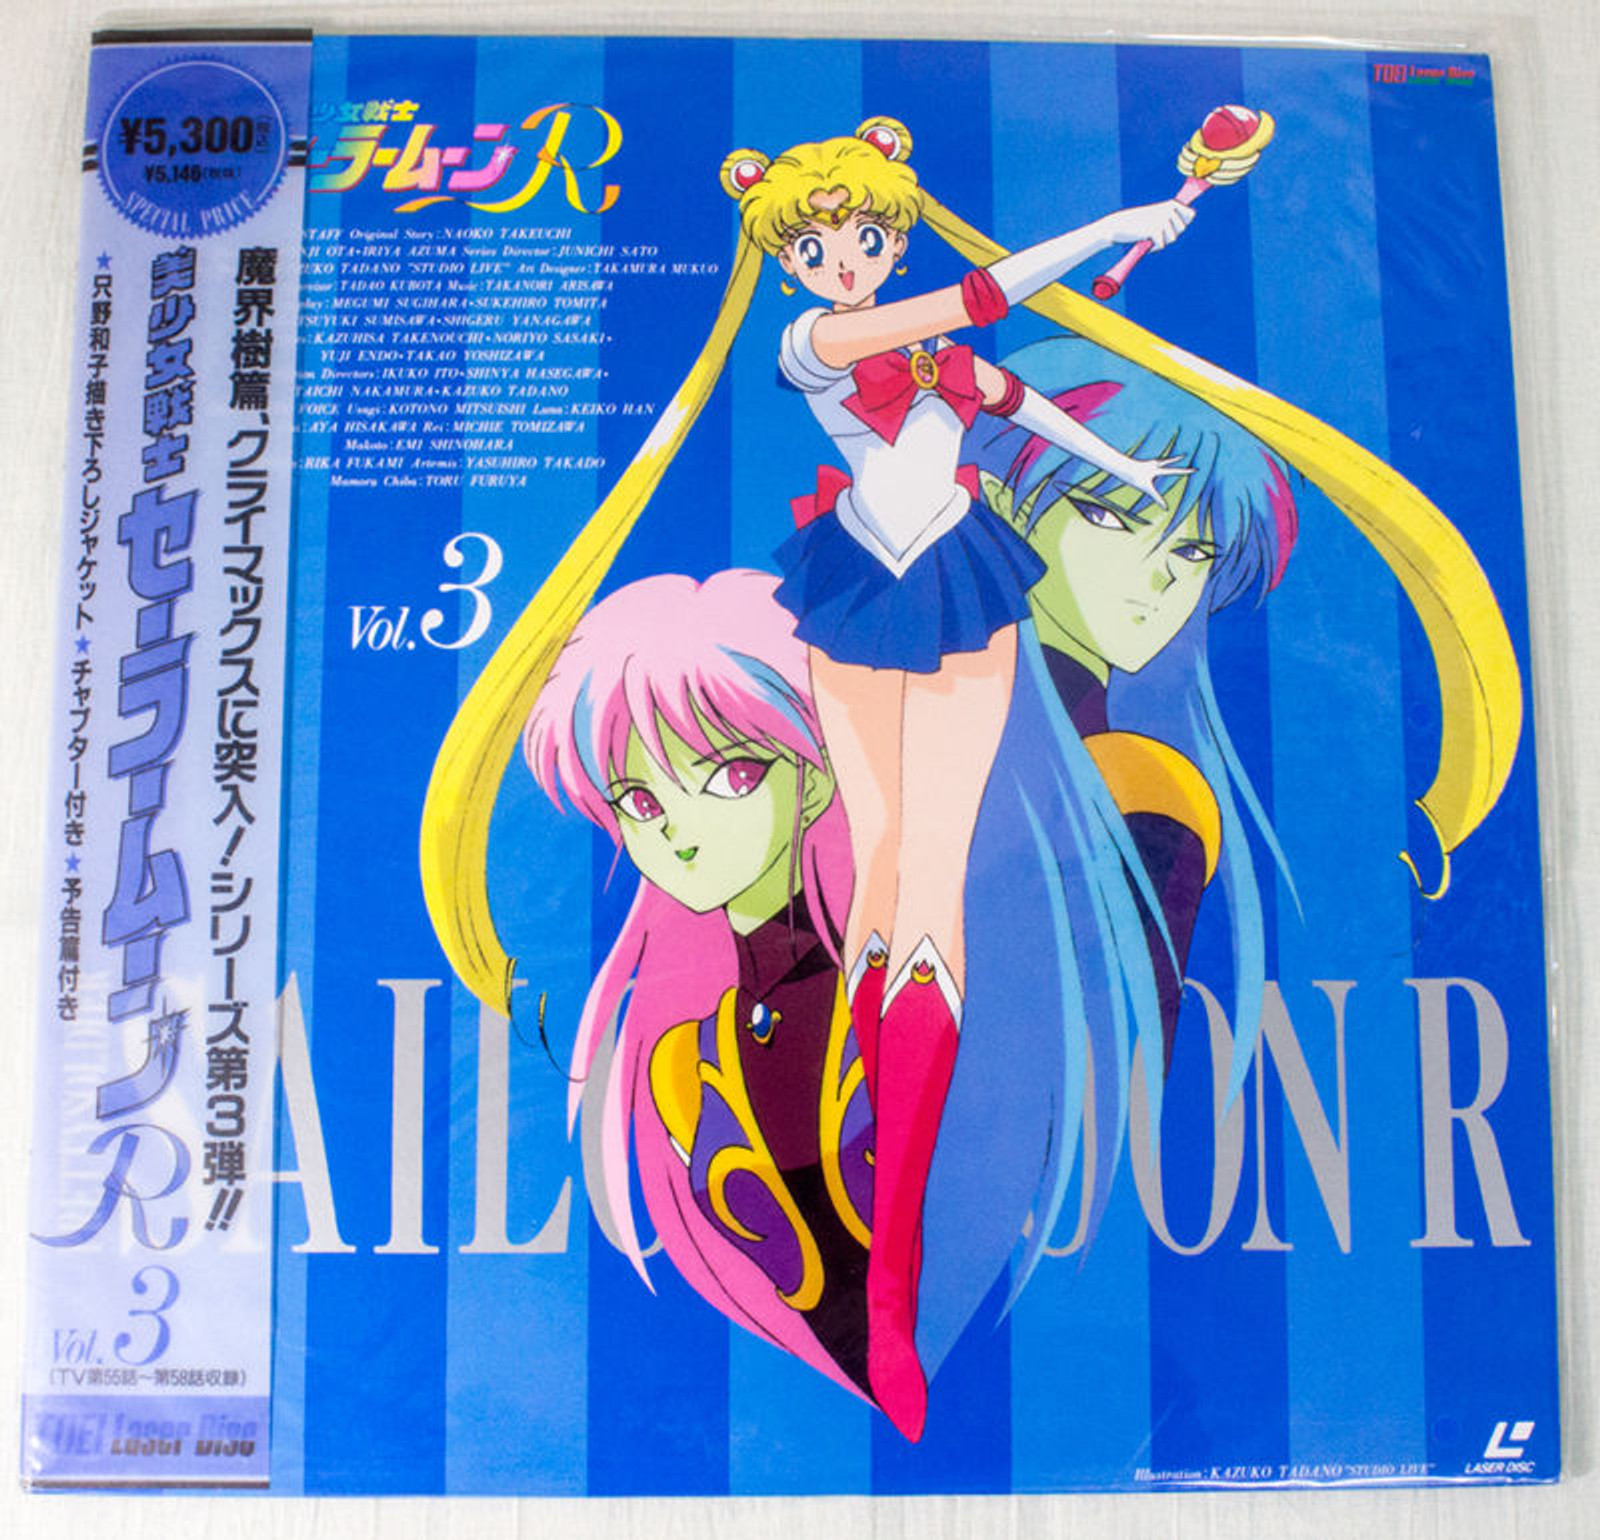 Sailor Moon R Vol.3 Laser Disc LD JAPAN ANIME MANGA